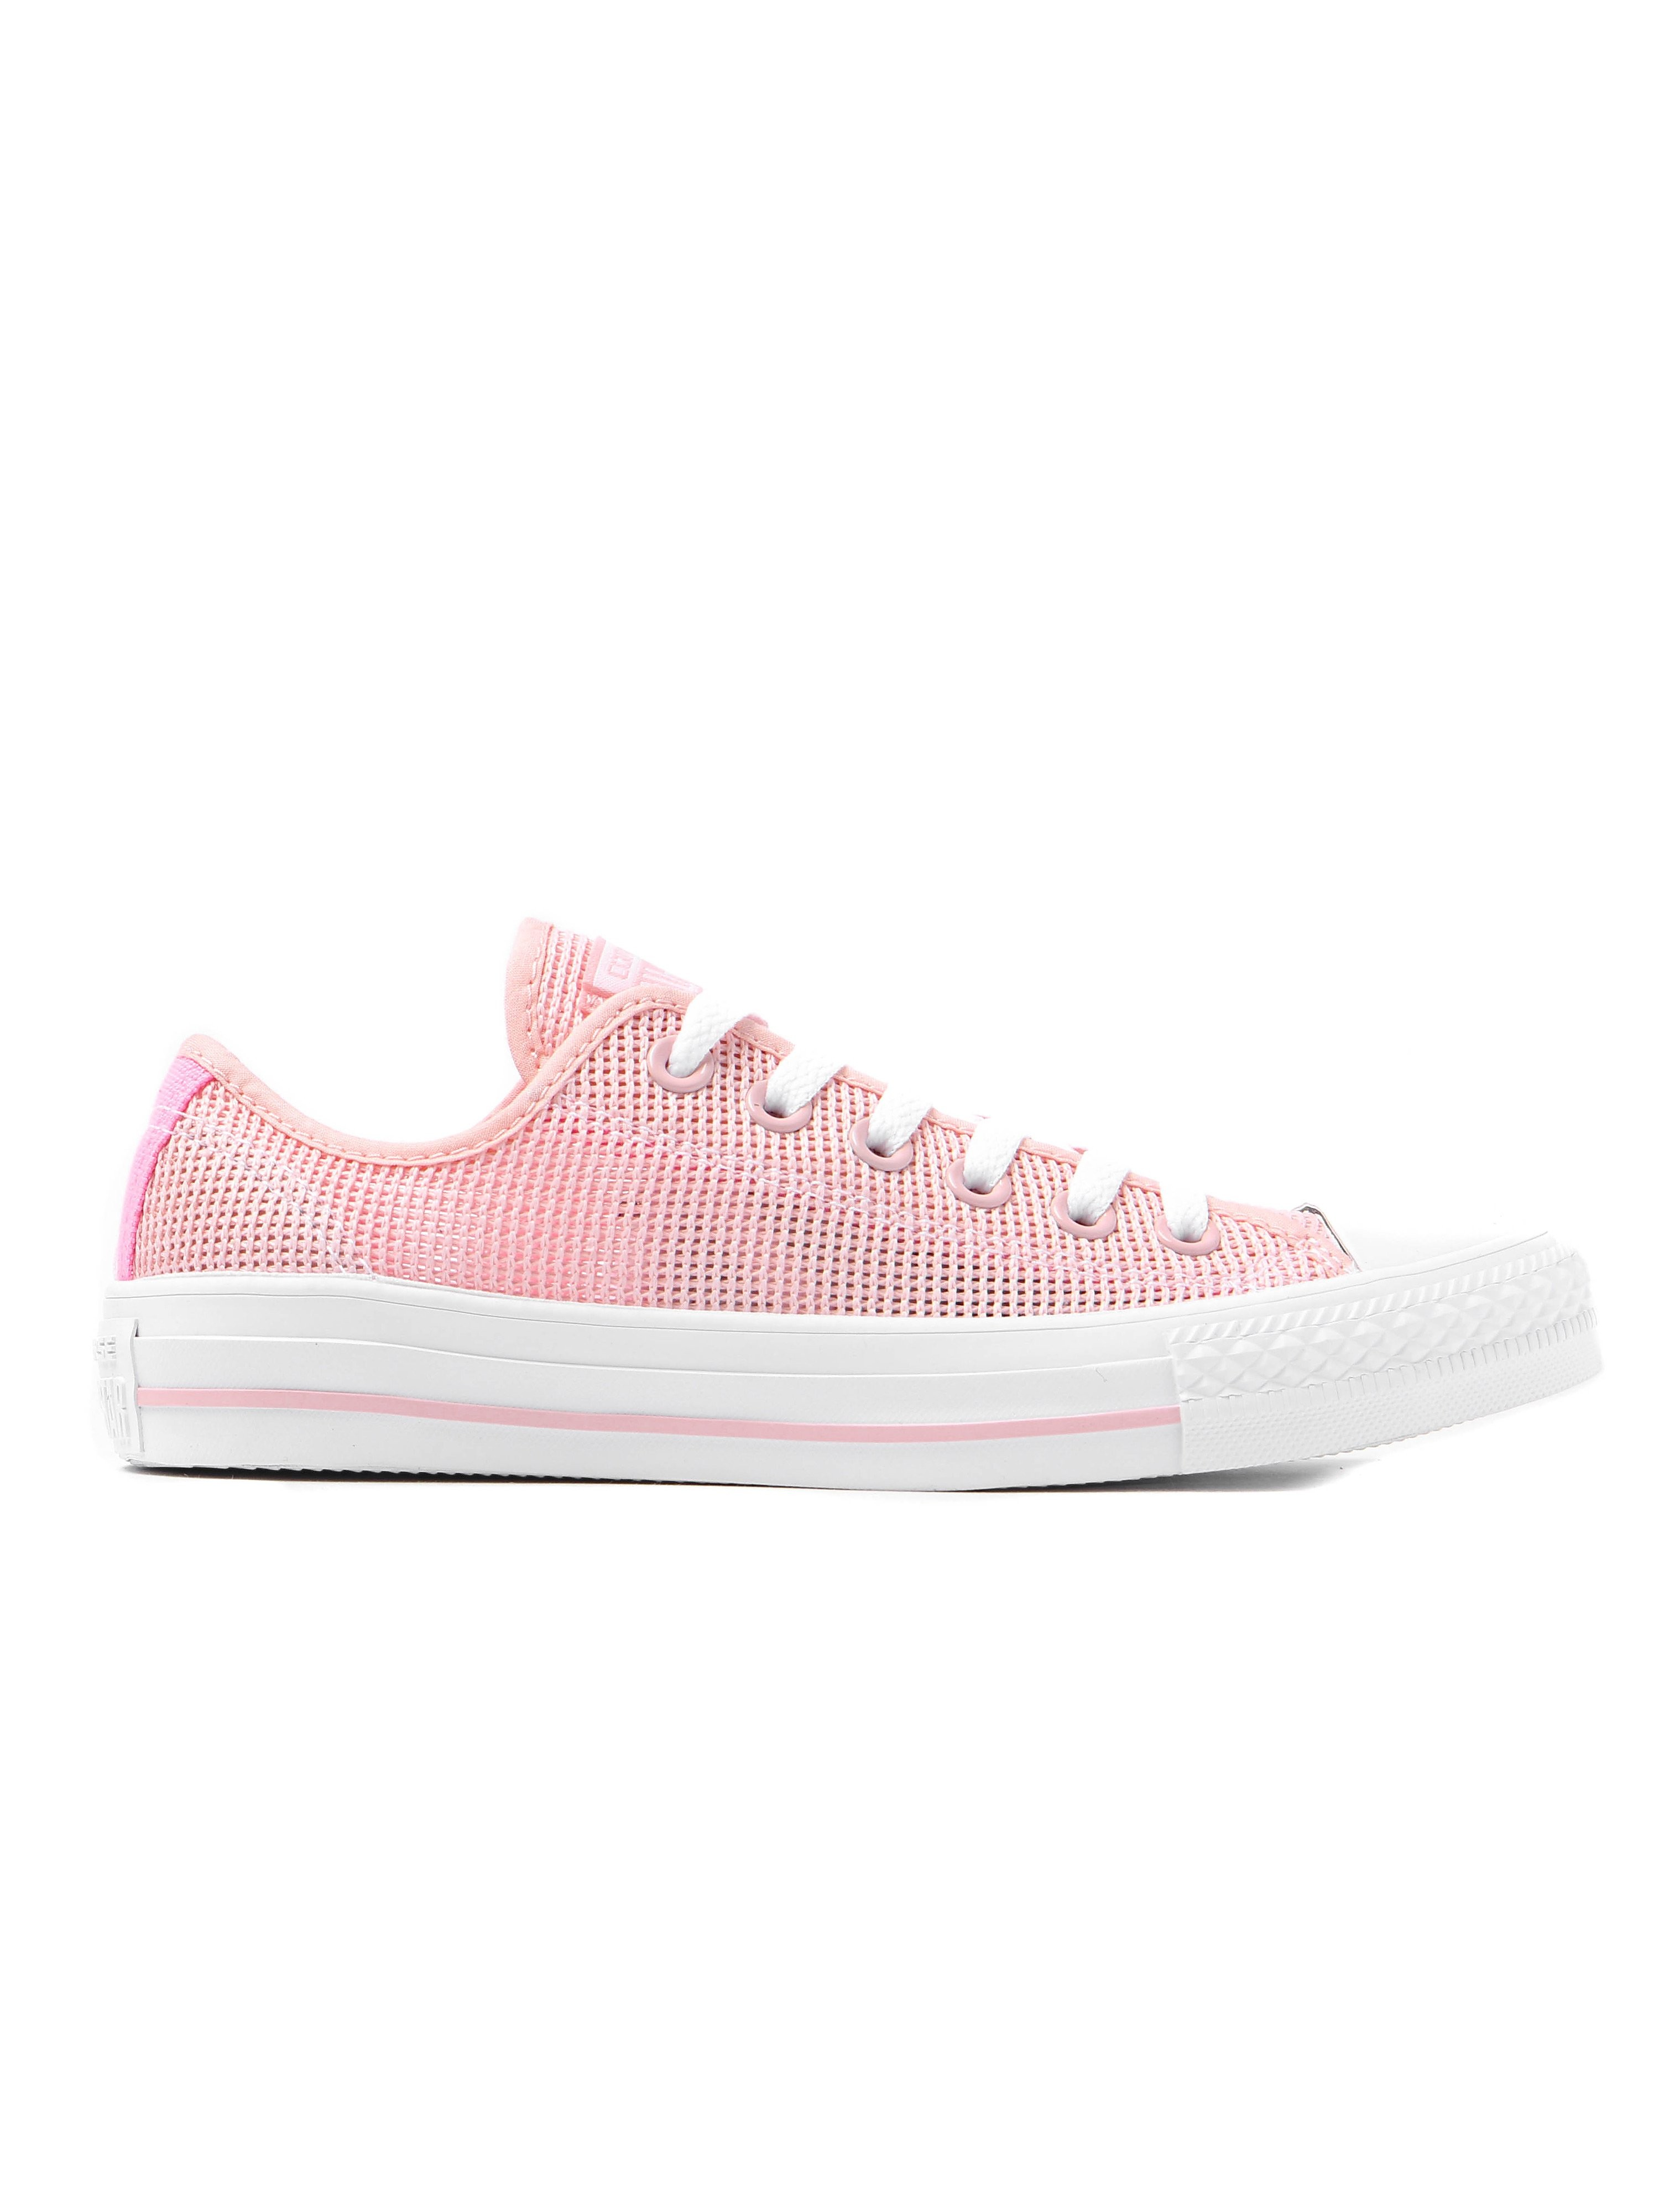 Converse Women's Chuck Taylor All Star Ox Trainers - Vapor Pink